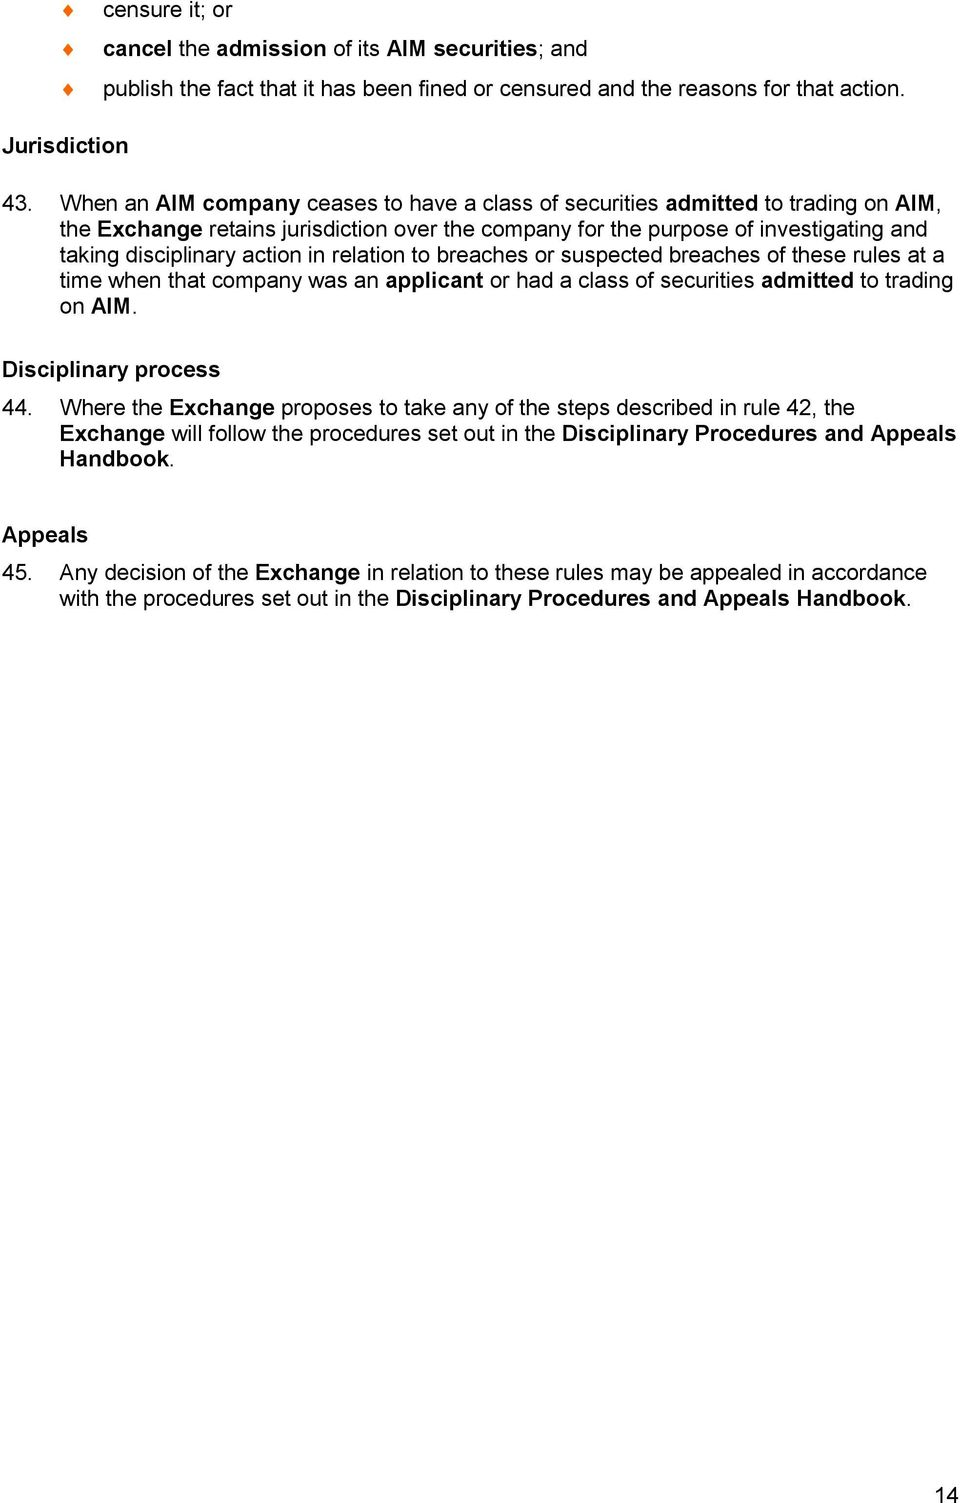 in relation to breaches or suspected breaches of these rules at a time when that company was an applicant or had a class of securities admitted to trading on AIM. Disciplinary process 44.